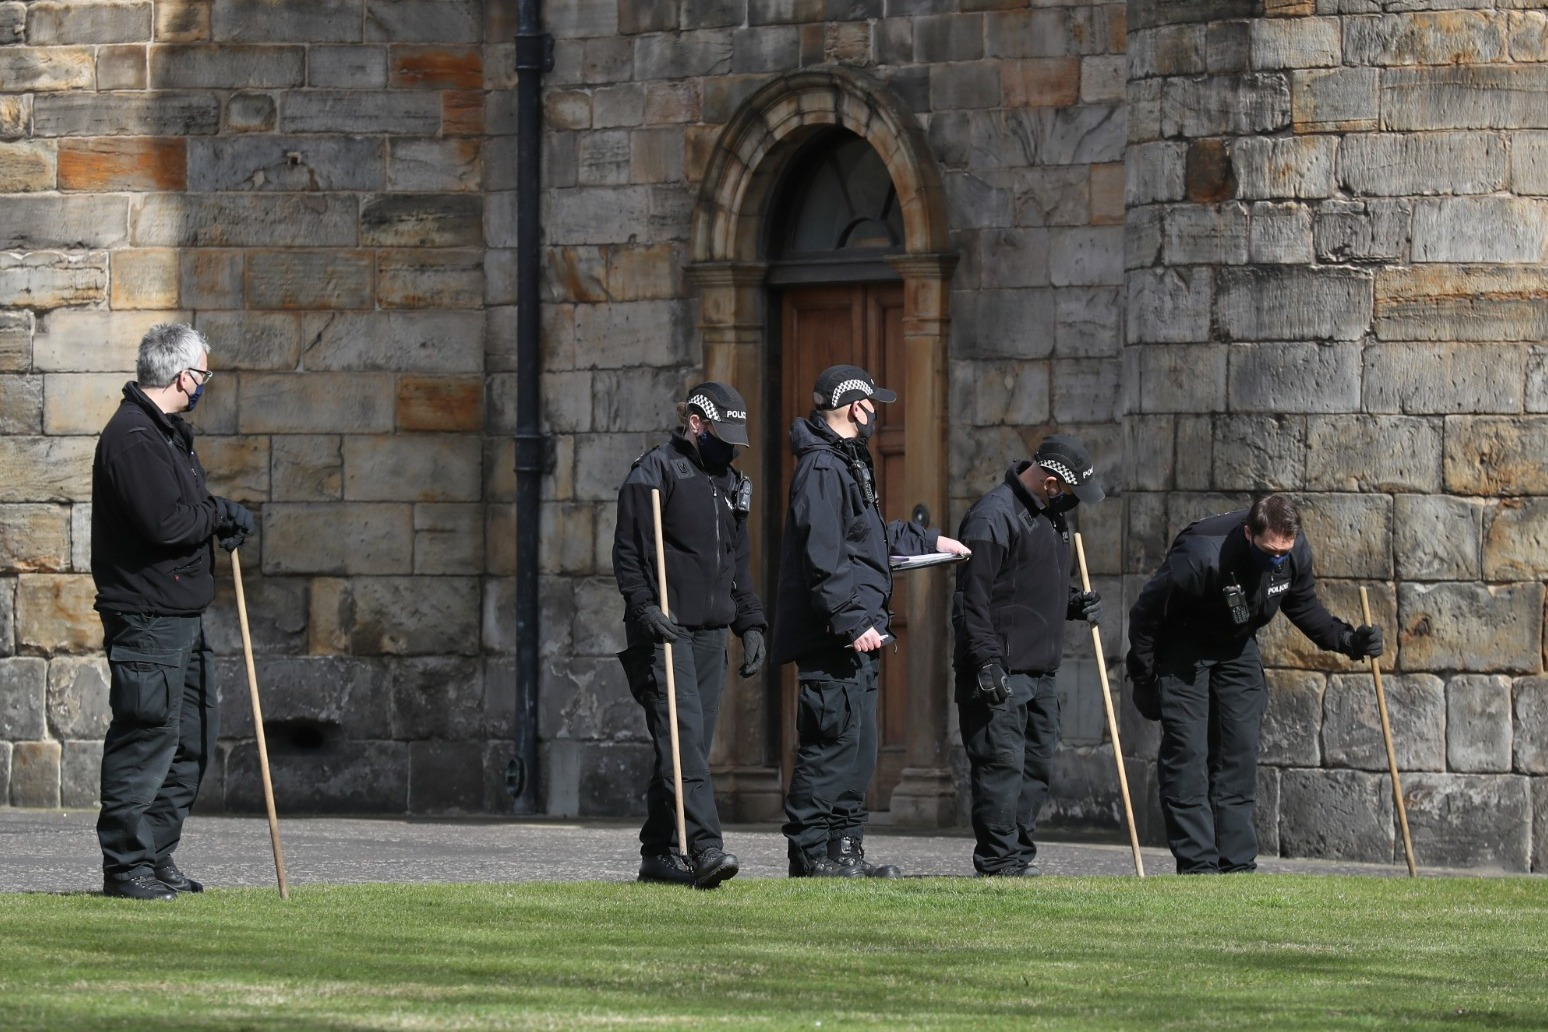 Man arrested following suspicious item in the grounds of the Palace of Holyroodhouse